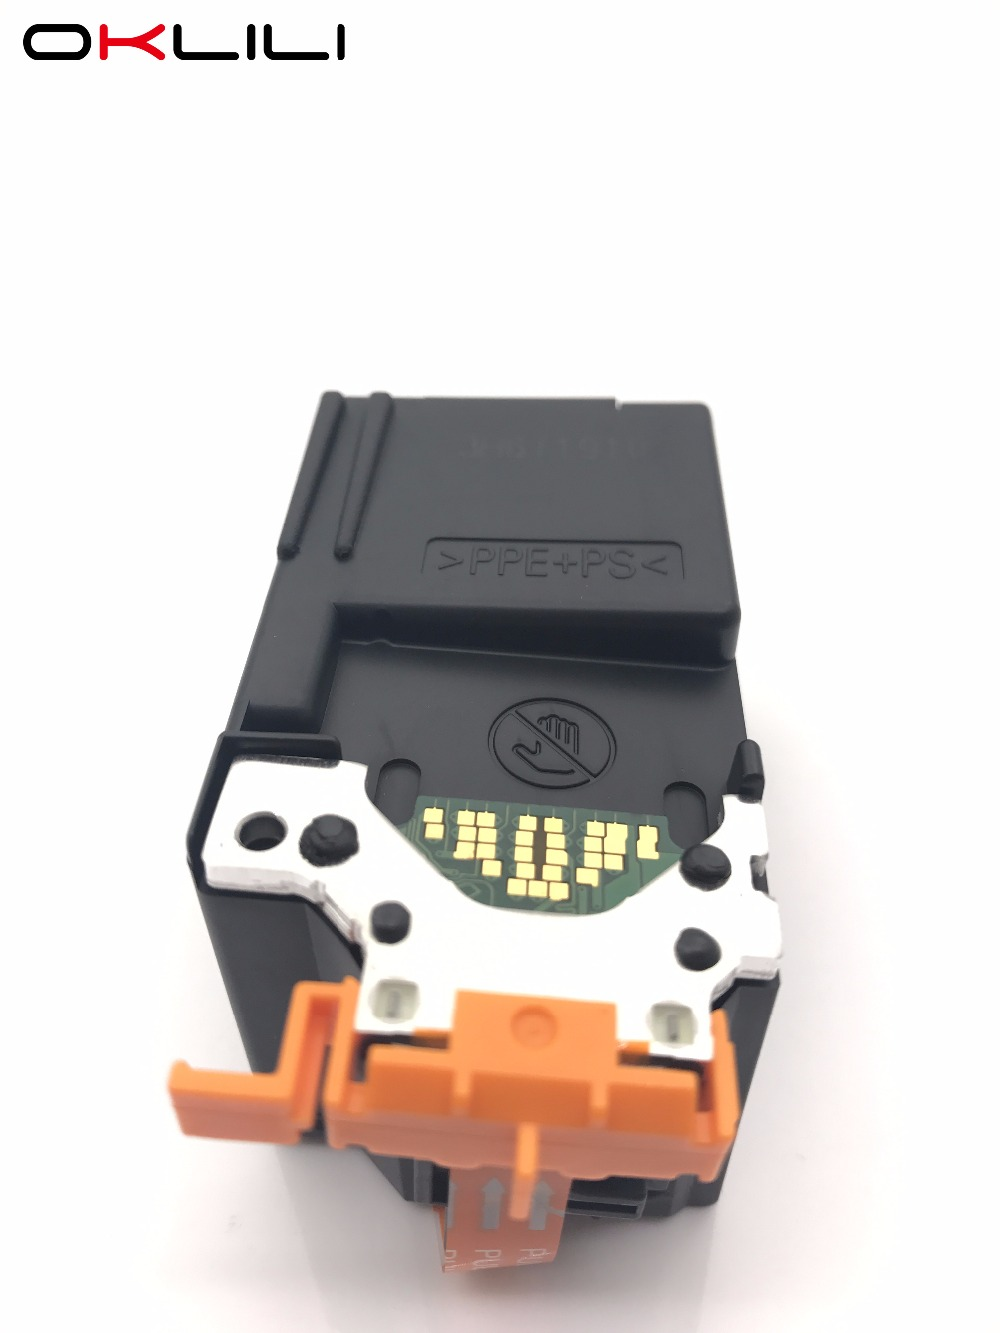 OKLILI ORIGINAL NEW QY6-0038 QY6-0038-000 Printhead Print Head Printer Head for Canon BJ S200 S200x S200SP S200SPx original refurbished print head qy6 0039 printhead compatible for canon s900 s9000 i9100 bjf9000 f900 f930 printer head